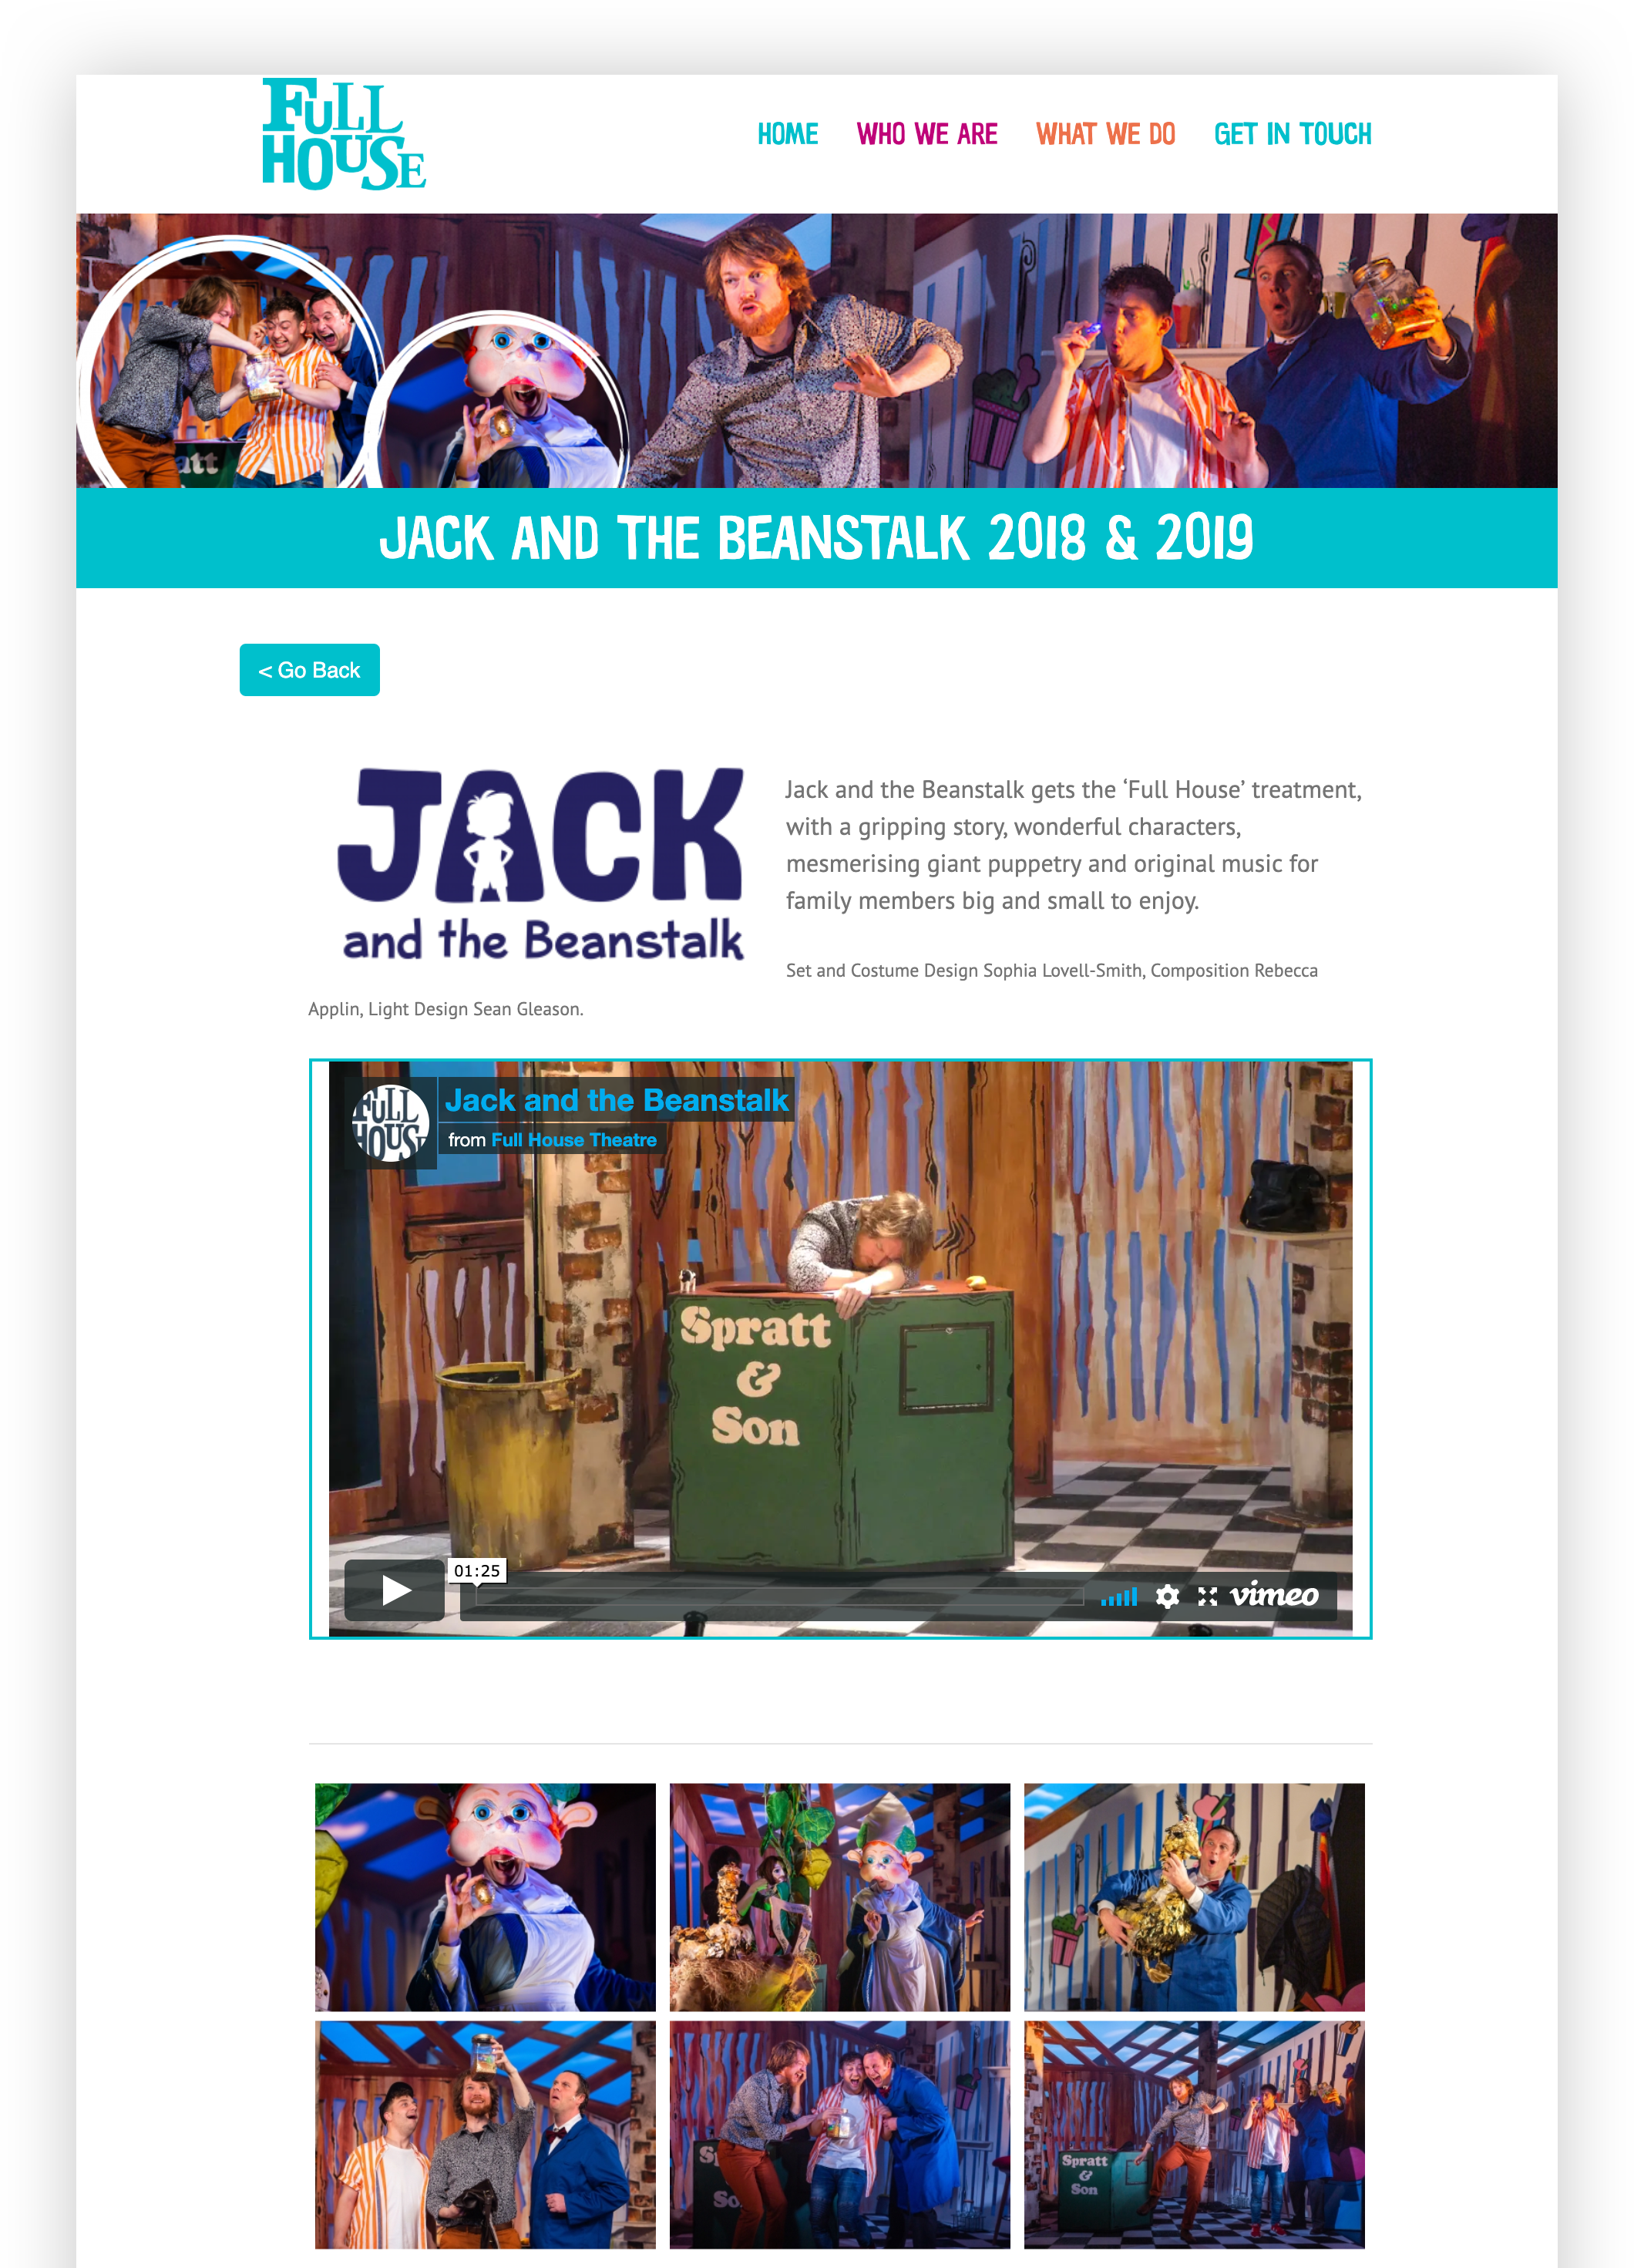 A screenshot of a Full House performance event page for Jack and the Beanstalk. There an intro paragraph followed by an embedded video and then an embedded gallery of six photos.